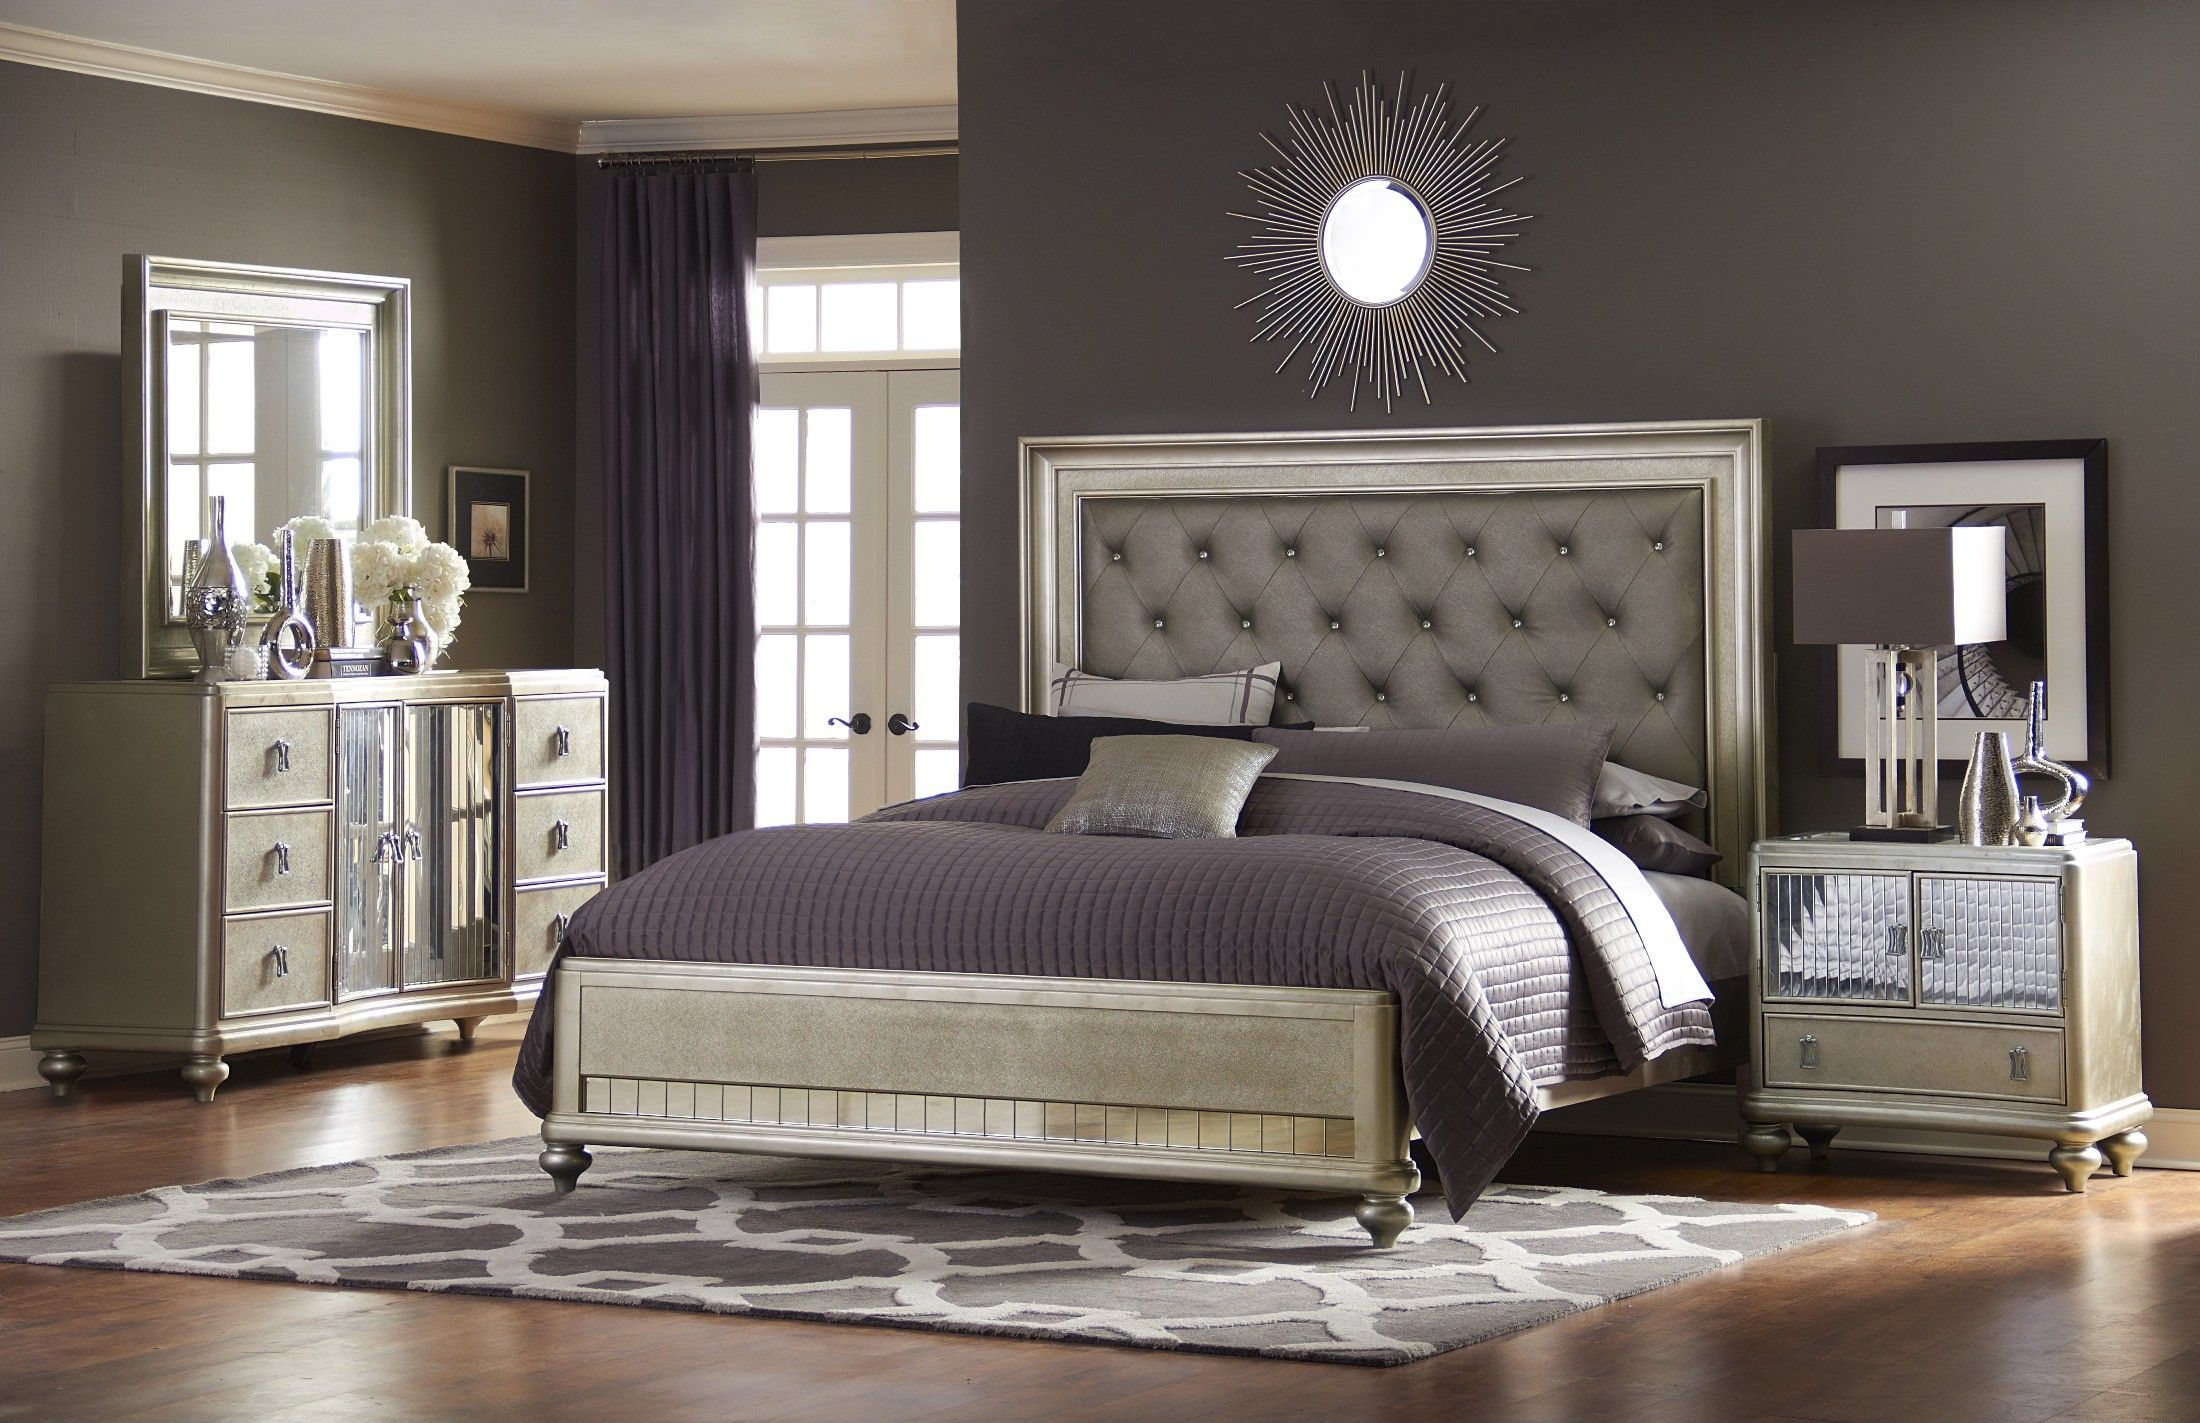 Platinum Platform Bedroom Set | Furniture Bedroom | Platform bedroom ...